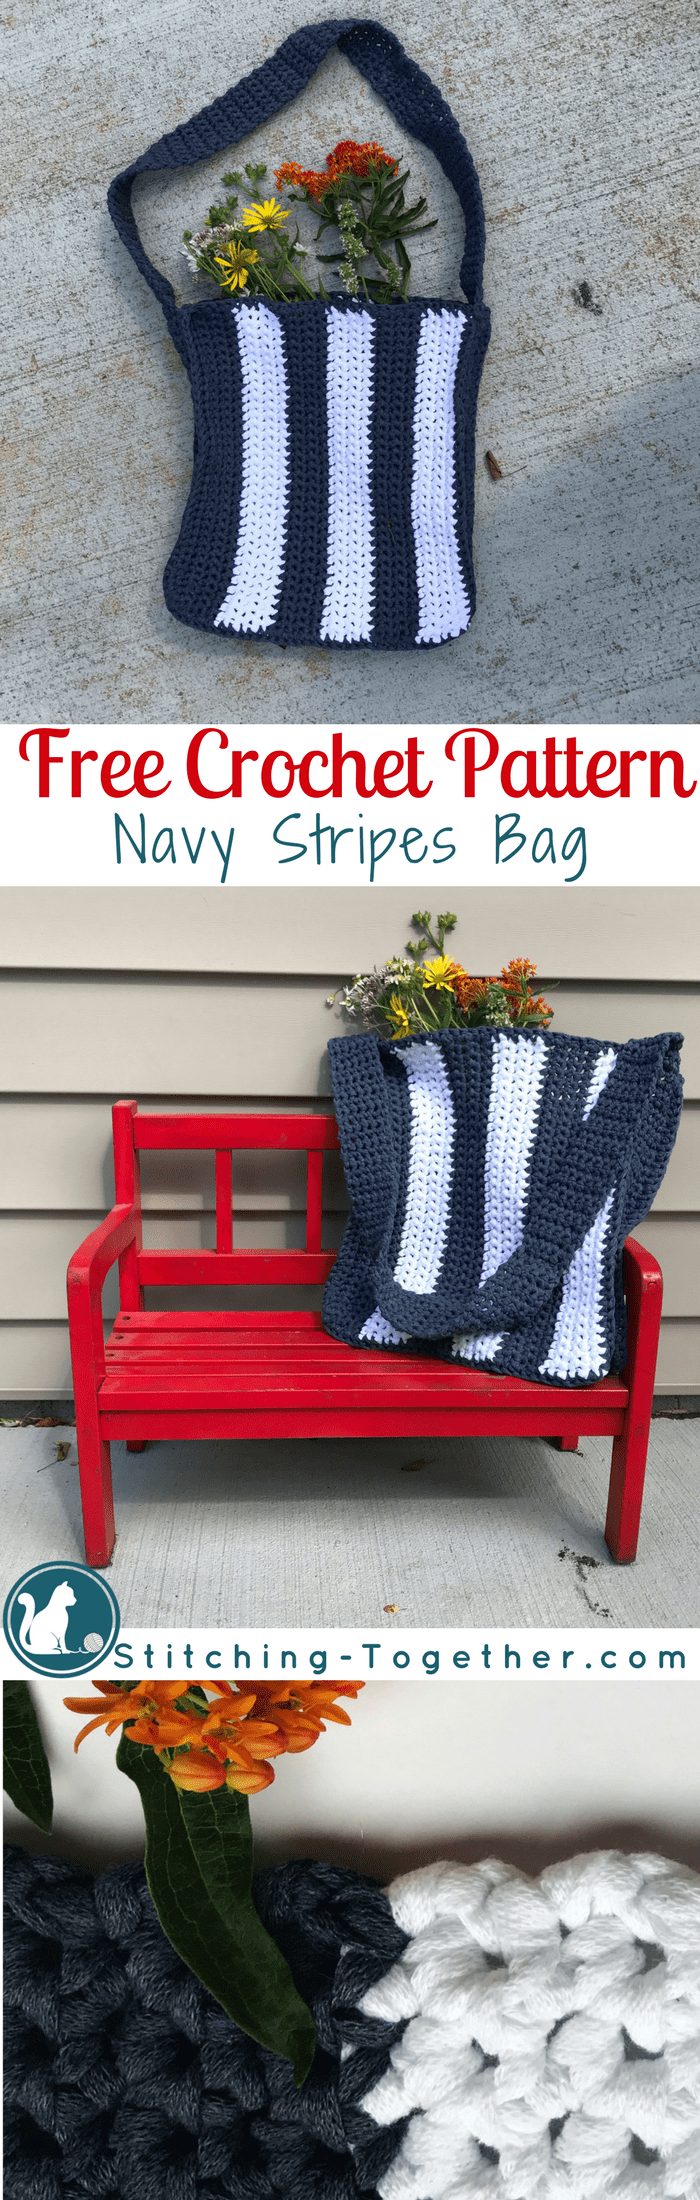 Make this easy crochet bag using the free pattern. Its a great bag for beginners. Free crochet pattern.